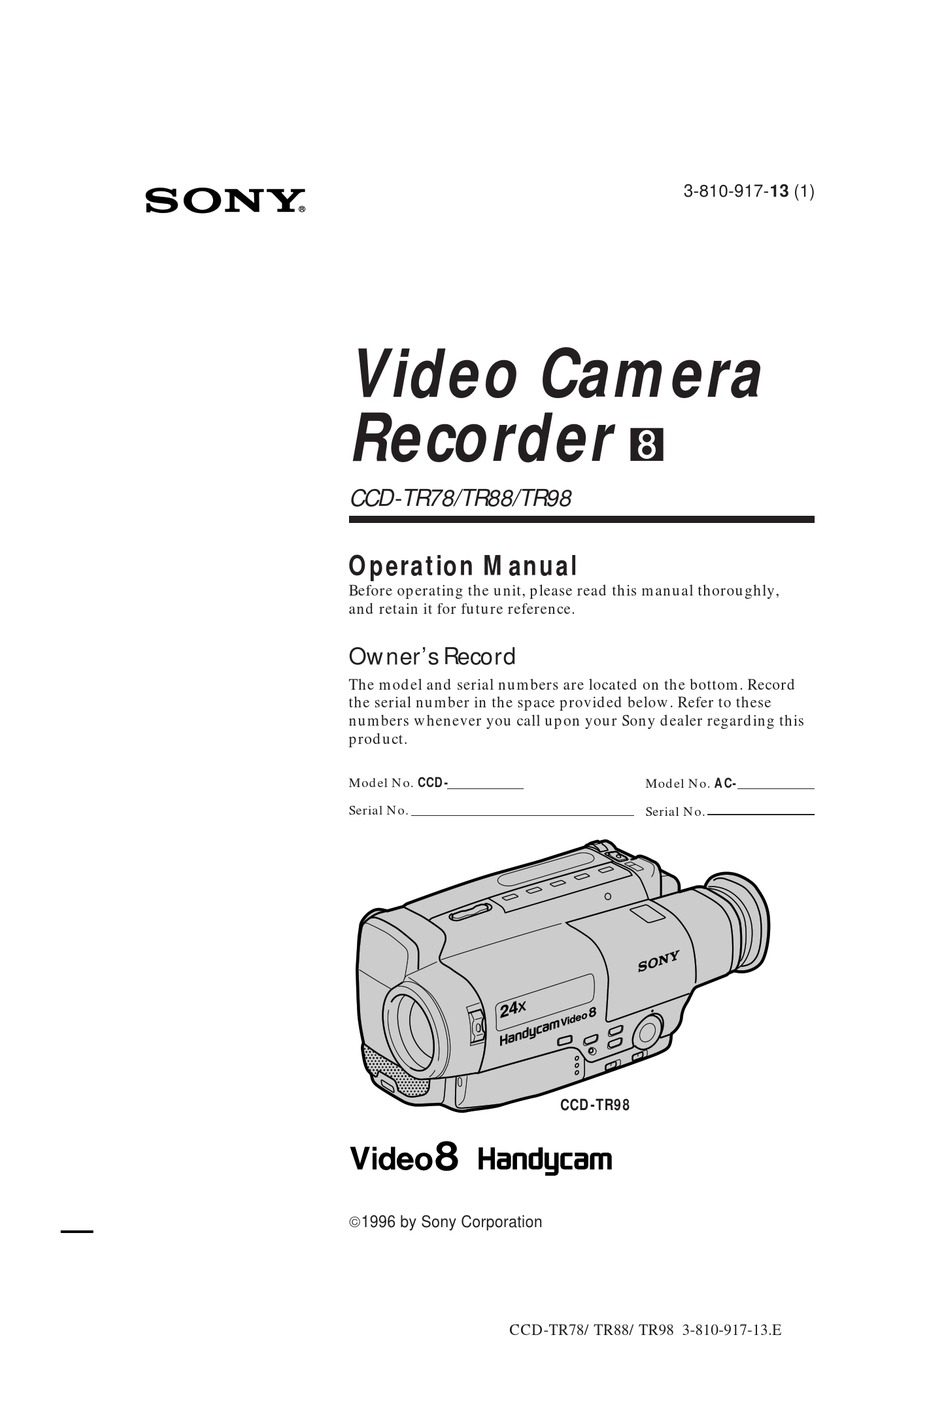 SONY CCD-TR78 OPERATION MANUAL (PRIMARY MANUAL) OPERATION